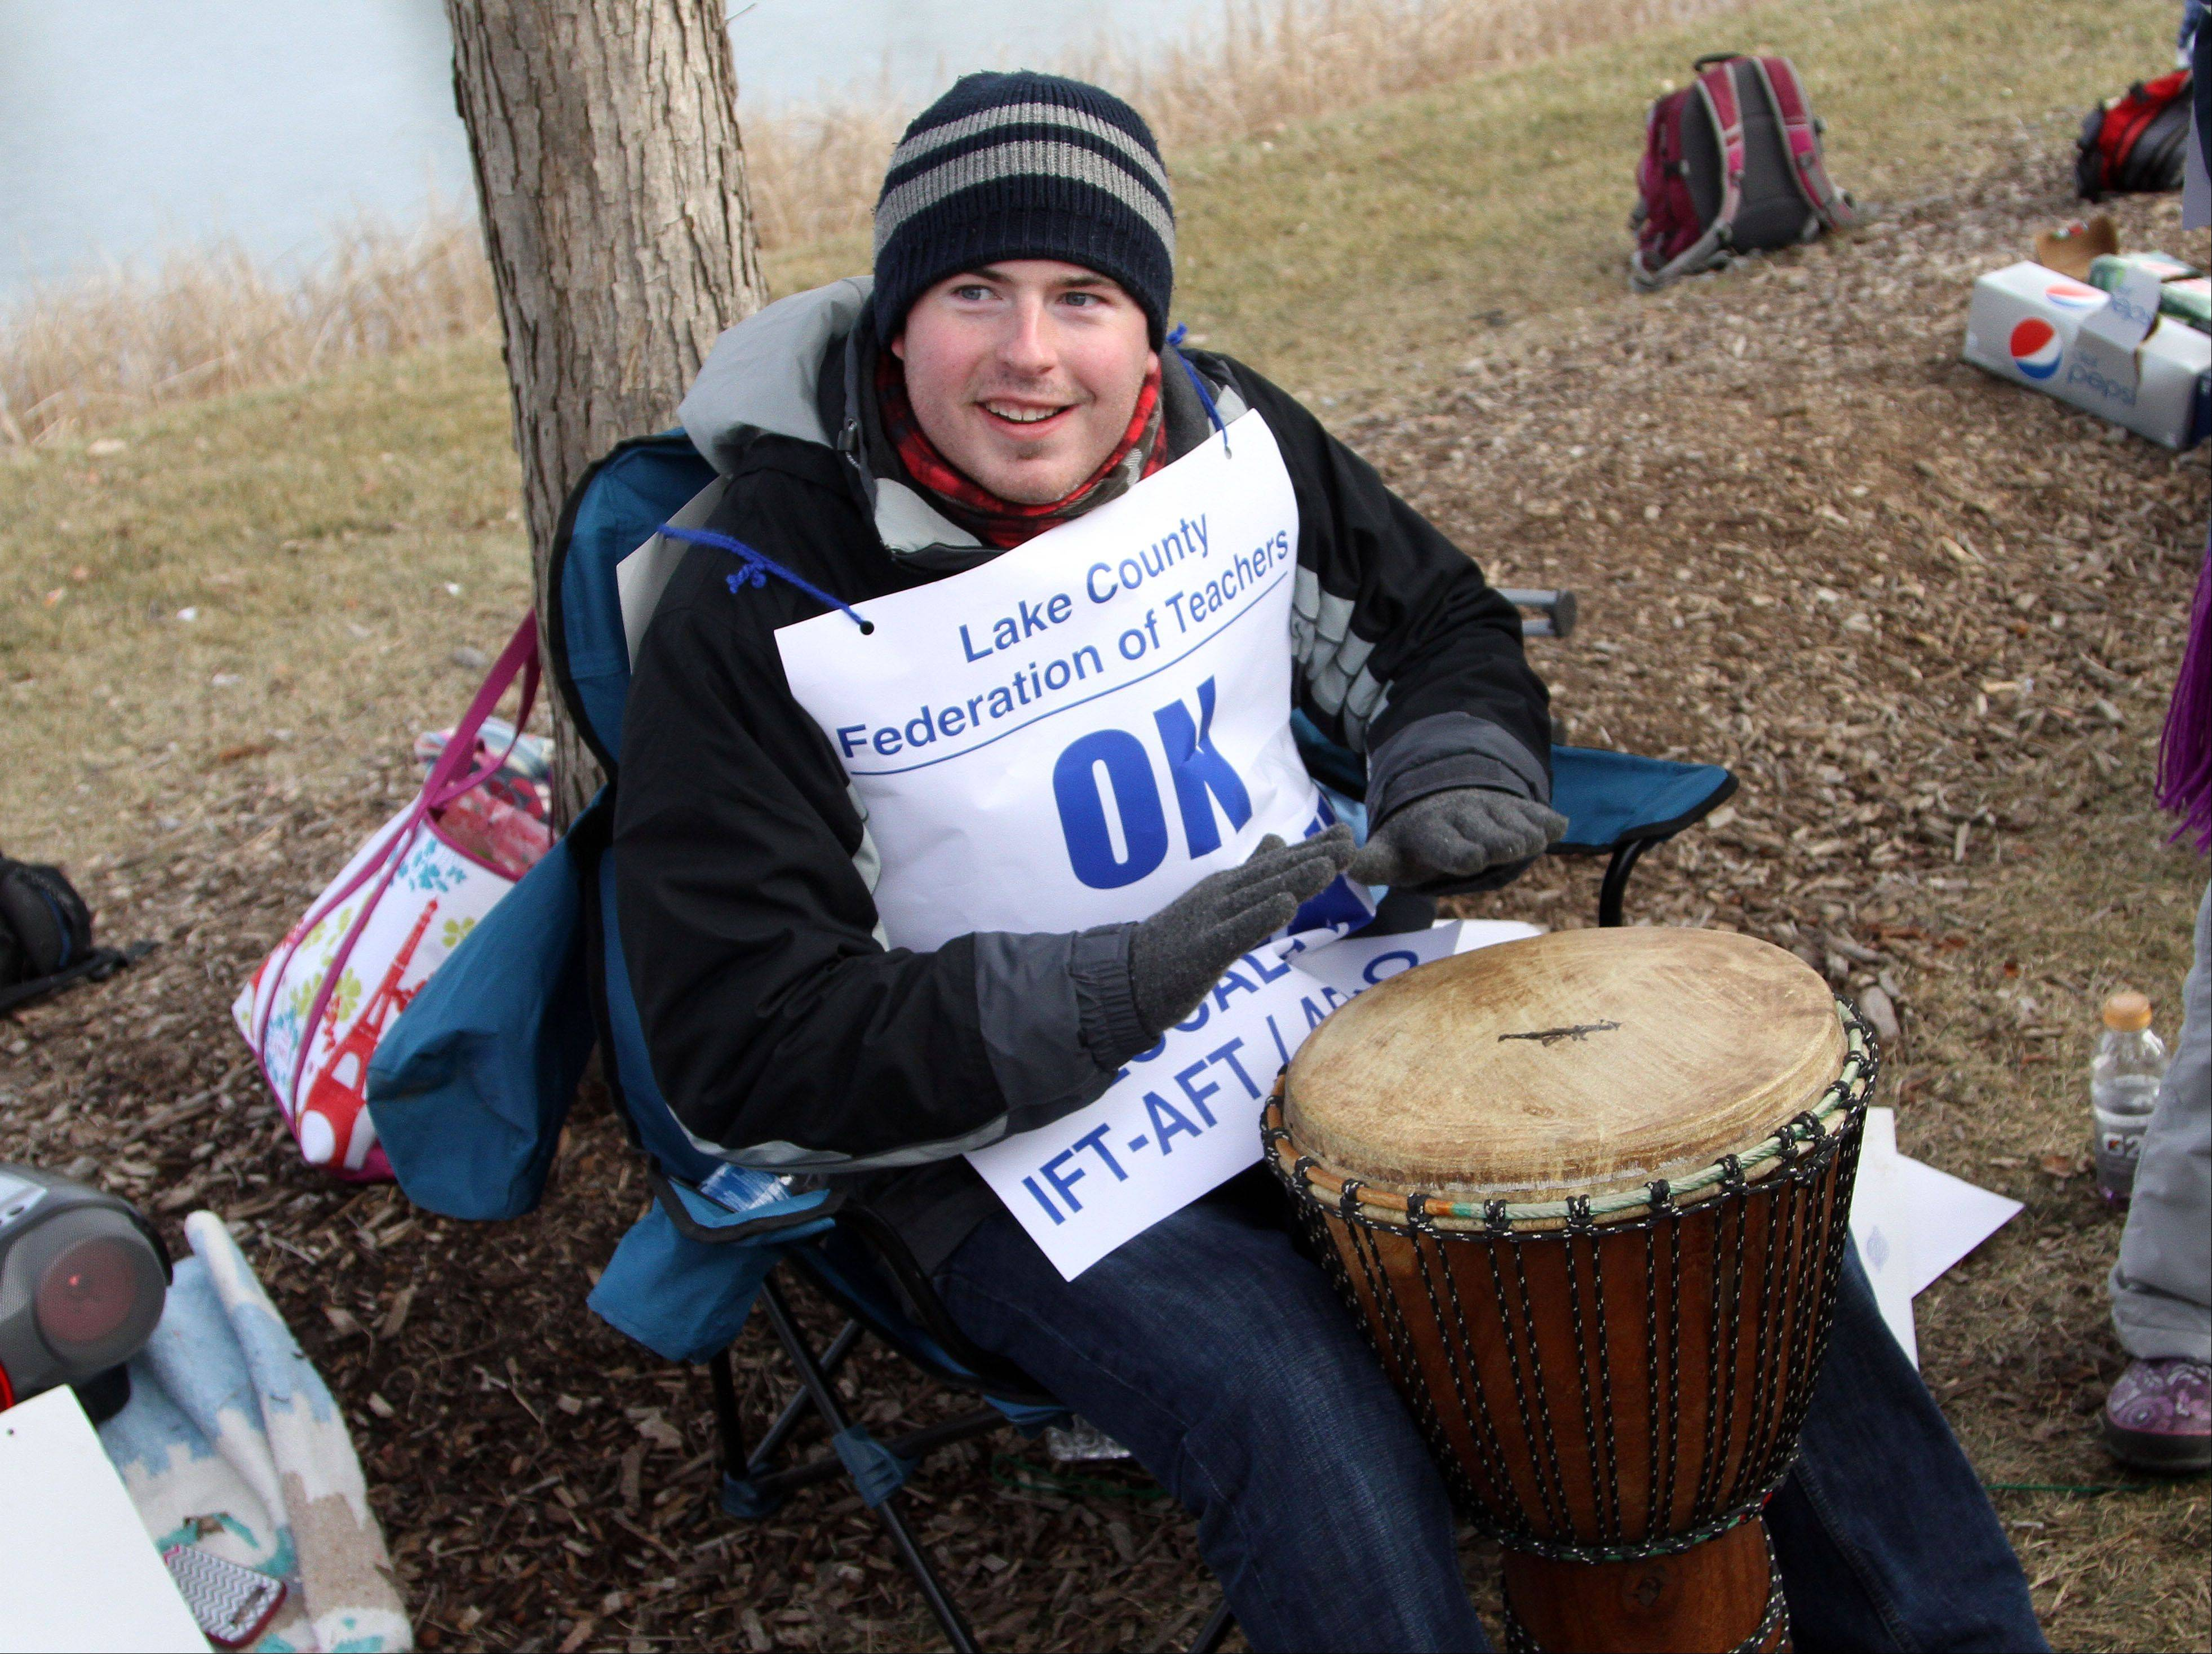 Sixth-grade teacher Jason White was among the District 46 teachers picketing Friday in front of Frederick School in Grayslake.